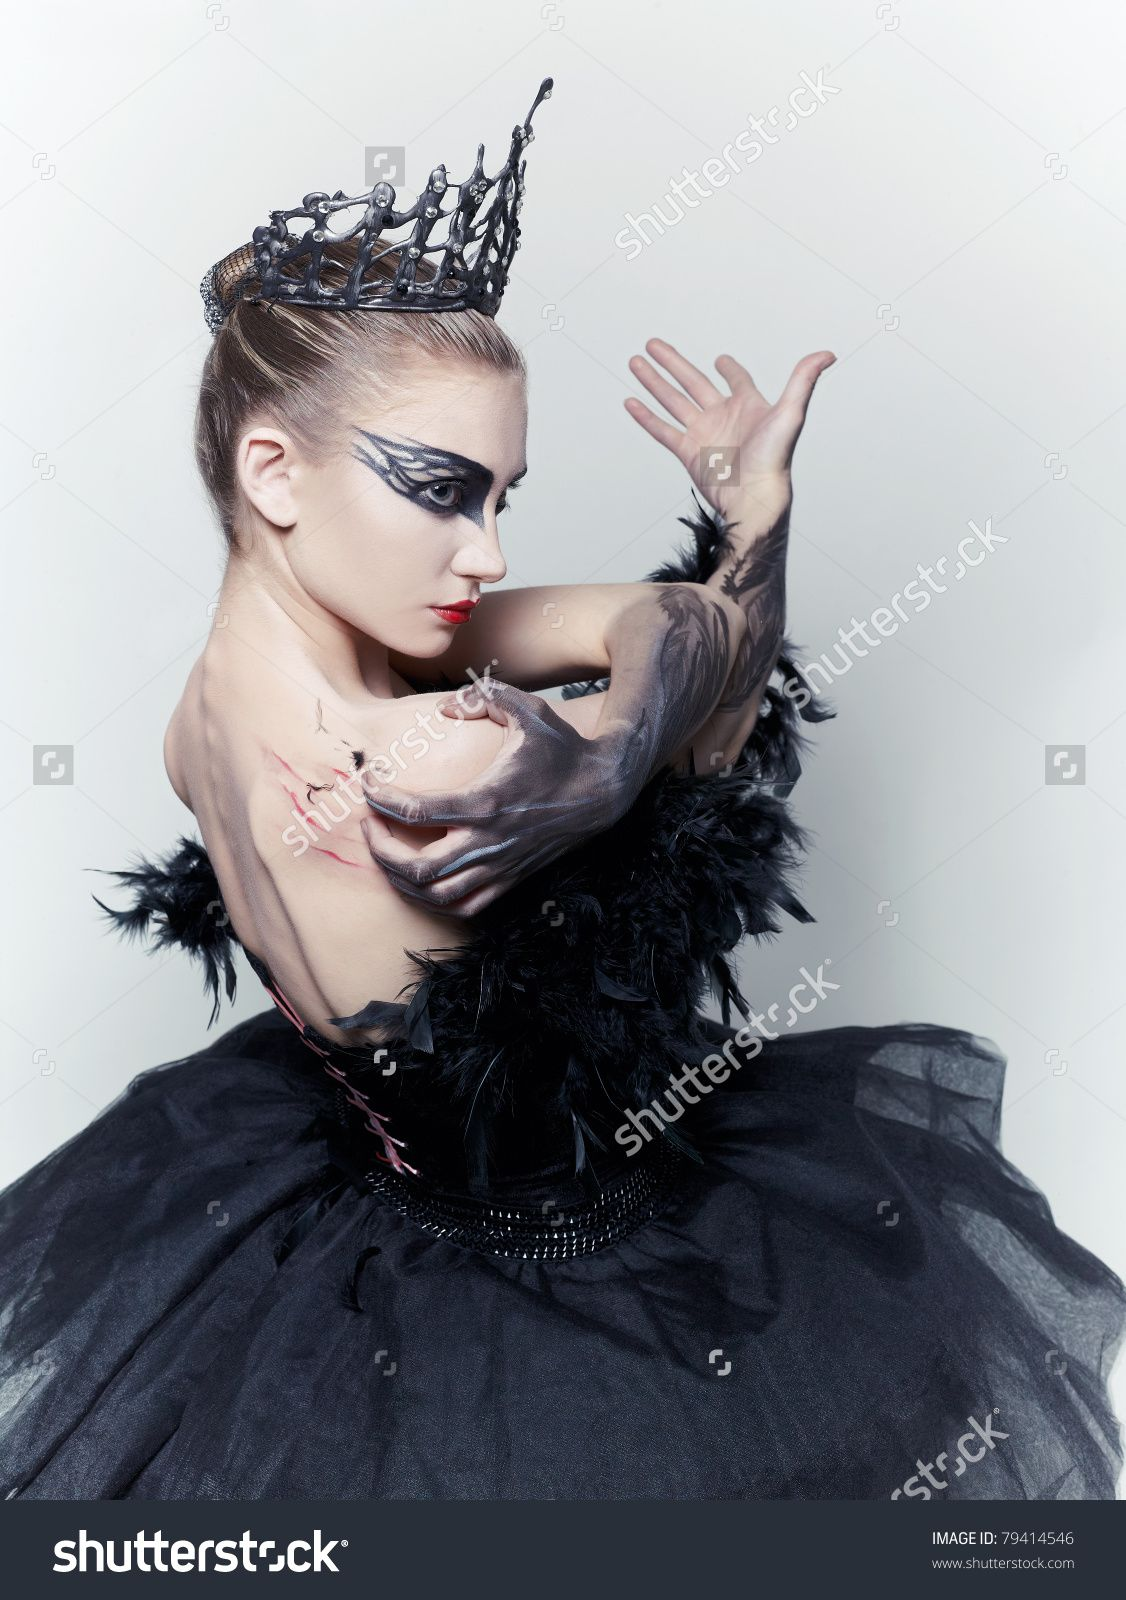 Ballerina Makeup Wallpapers High Quality: Ballerina-black-swan-makeup And Look